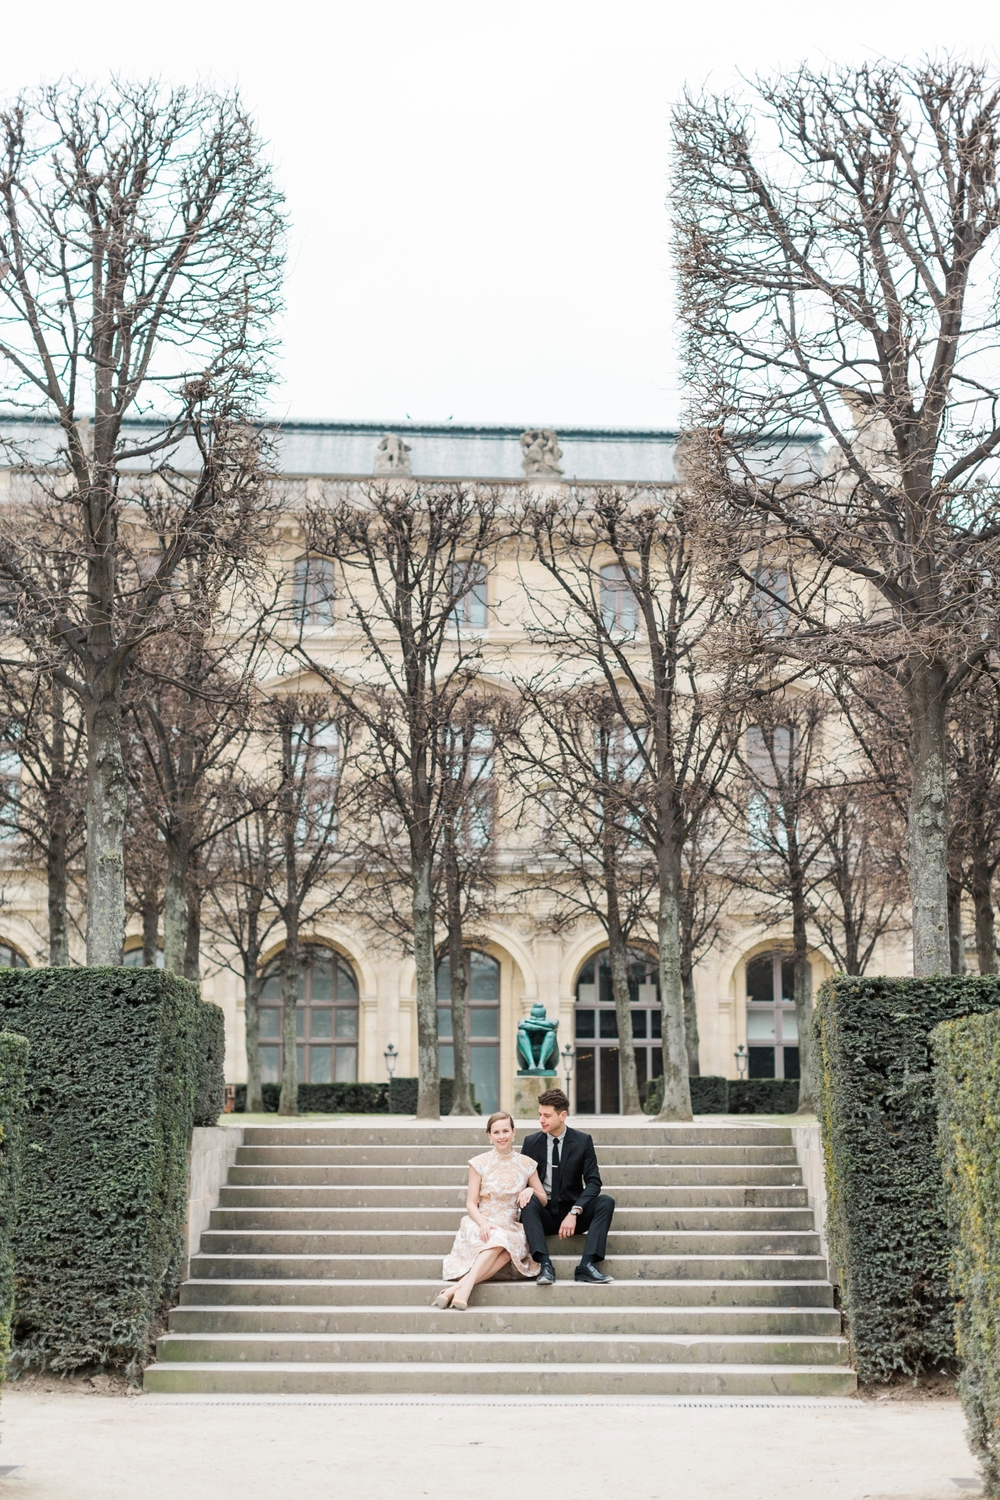 Paris-France-Wedding-Photography-Chloe-Luka-Photography_7691.jpg